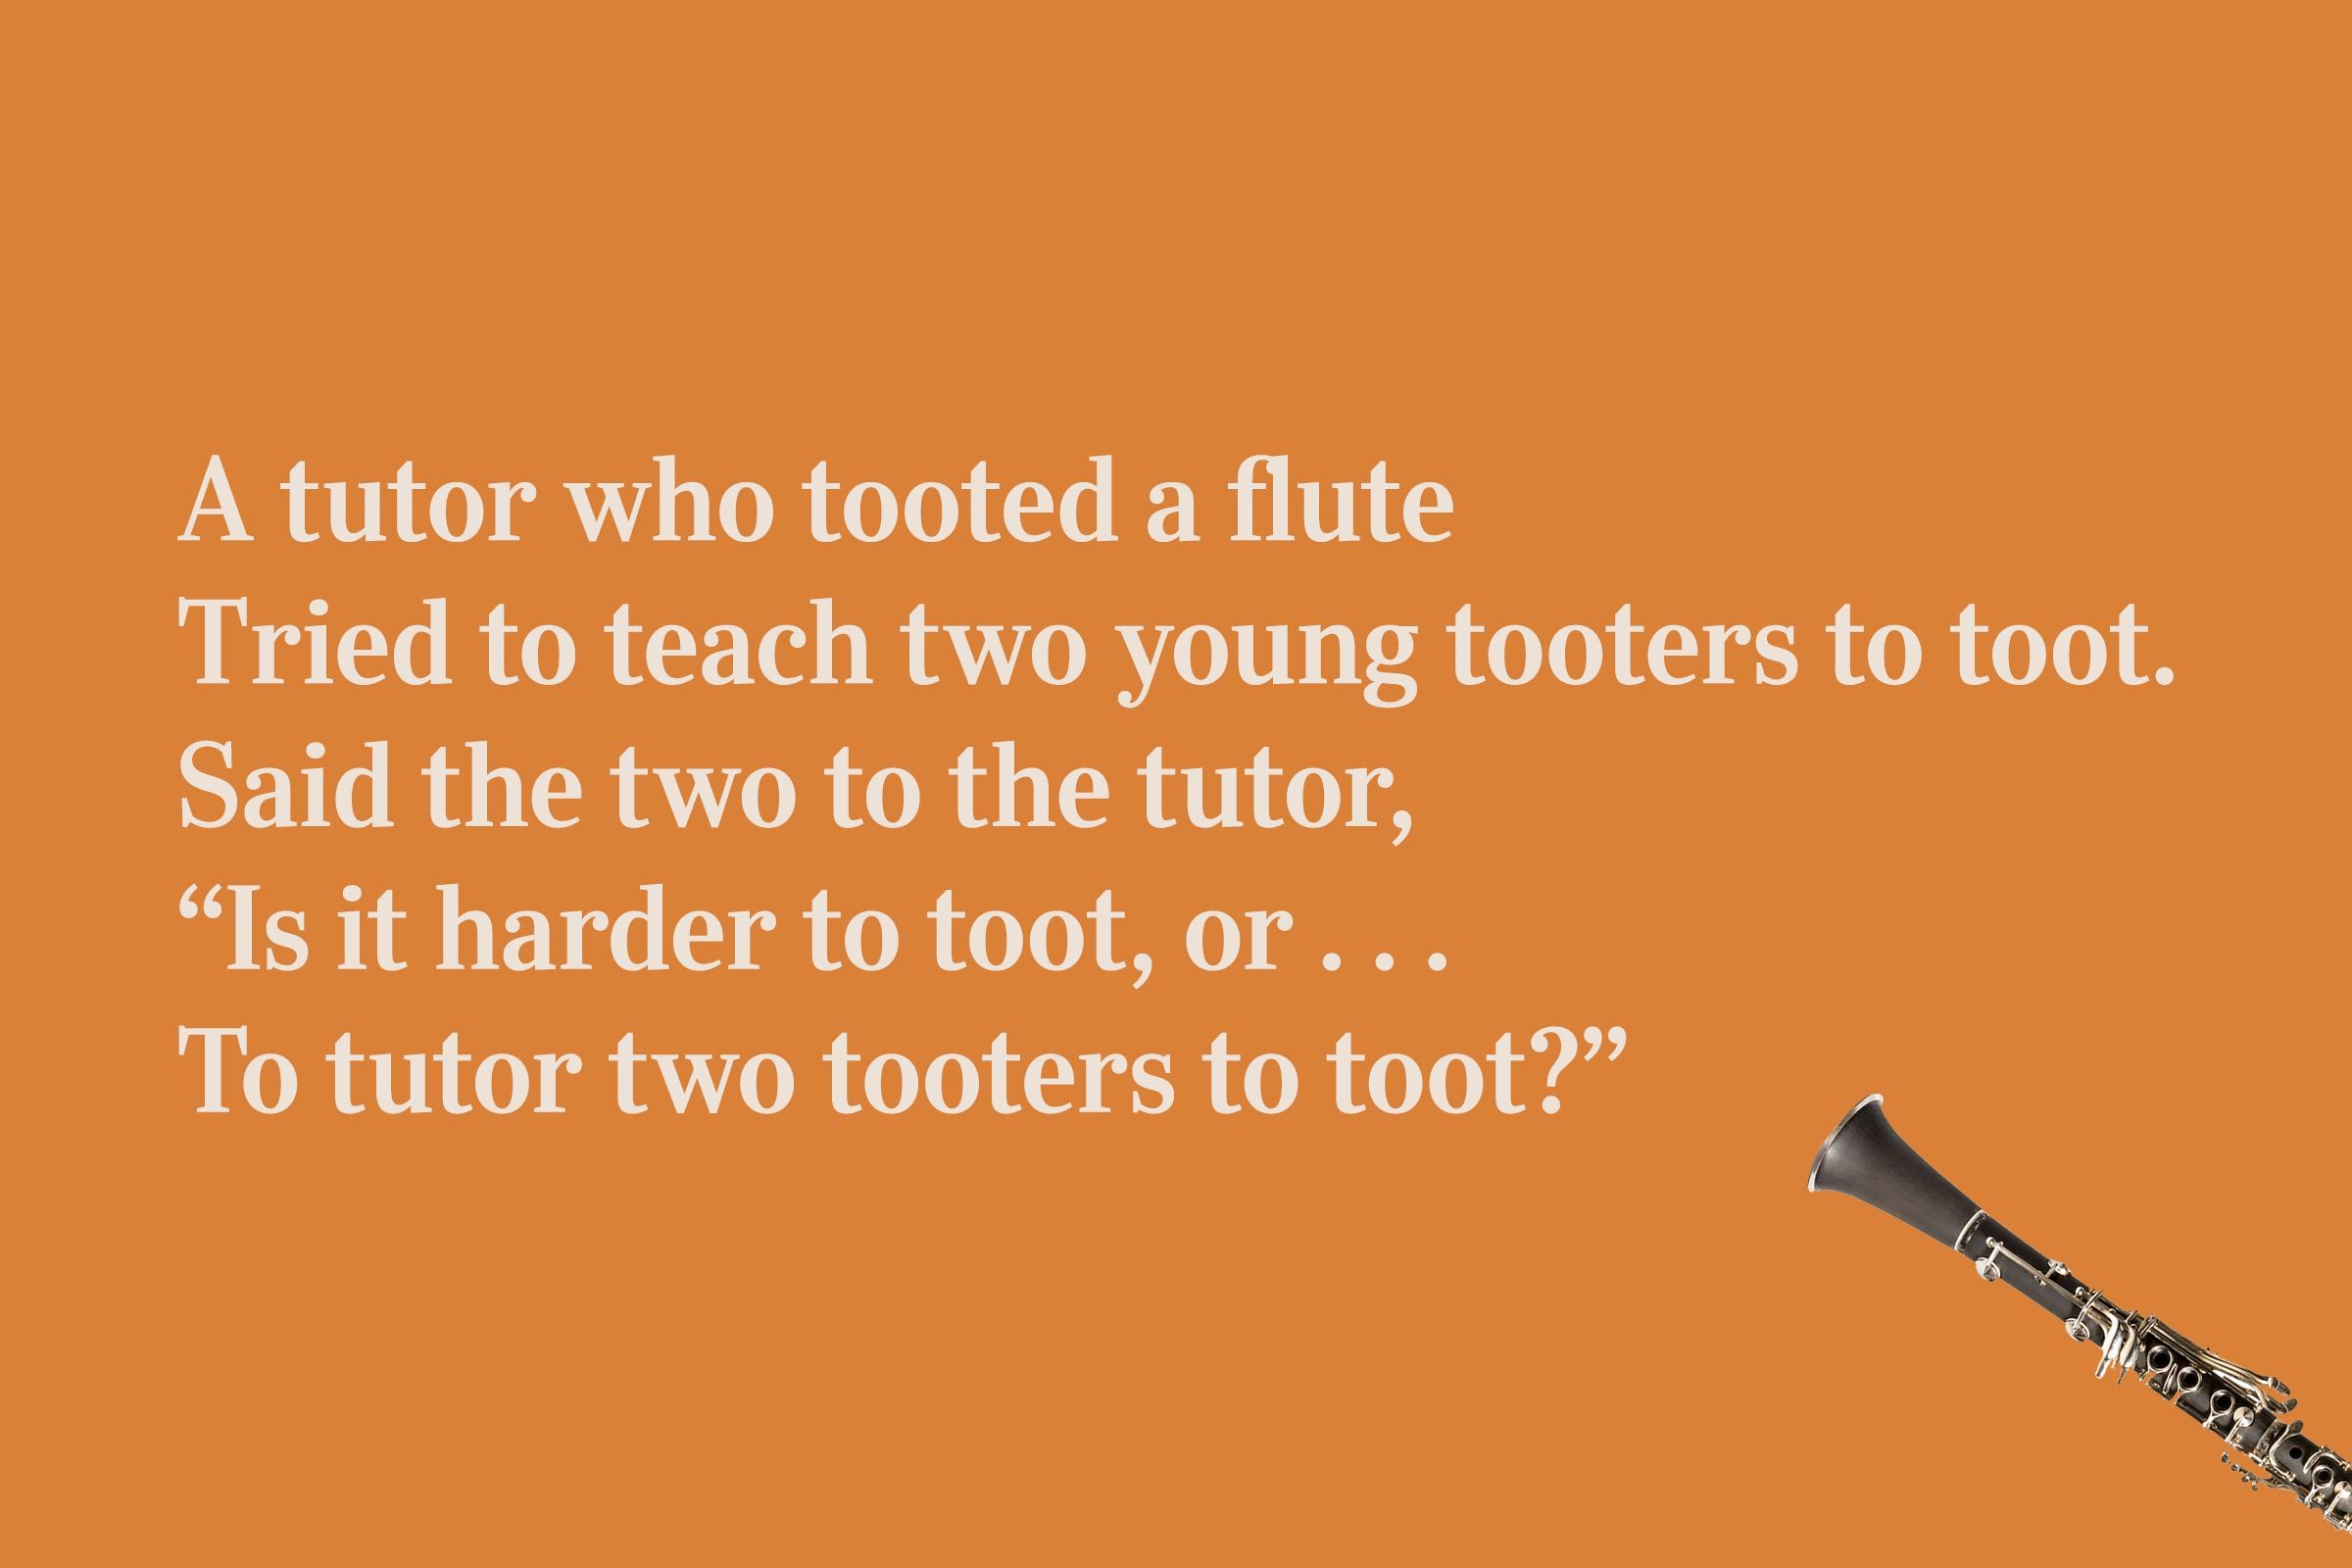 "A tutor who tooted a flute / Tried to teach two young tooters to toot. / Said the two to the tutor, / ""Is it harder to toot, or . . . / To tutor two tooters to toot?"""